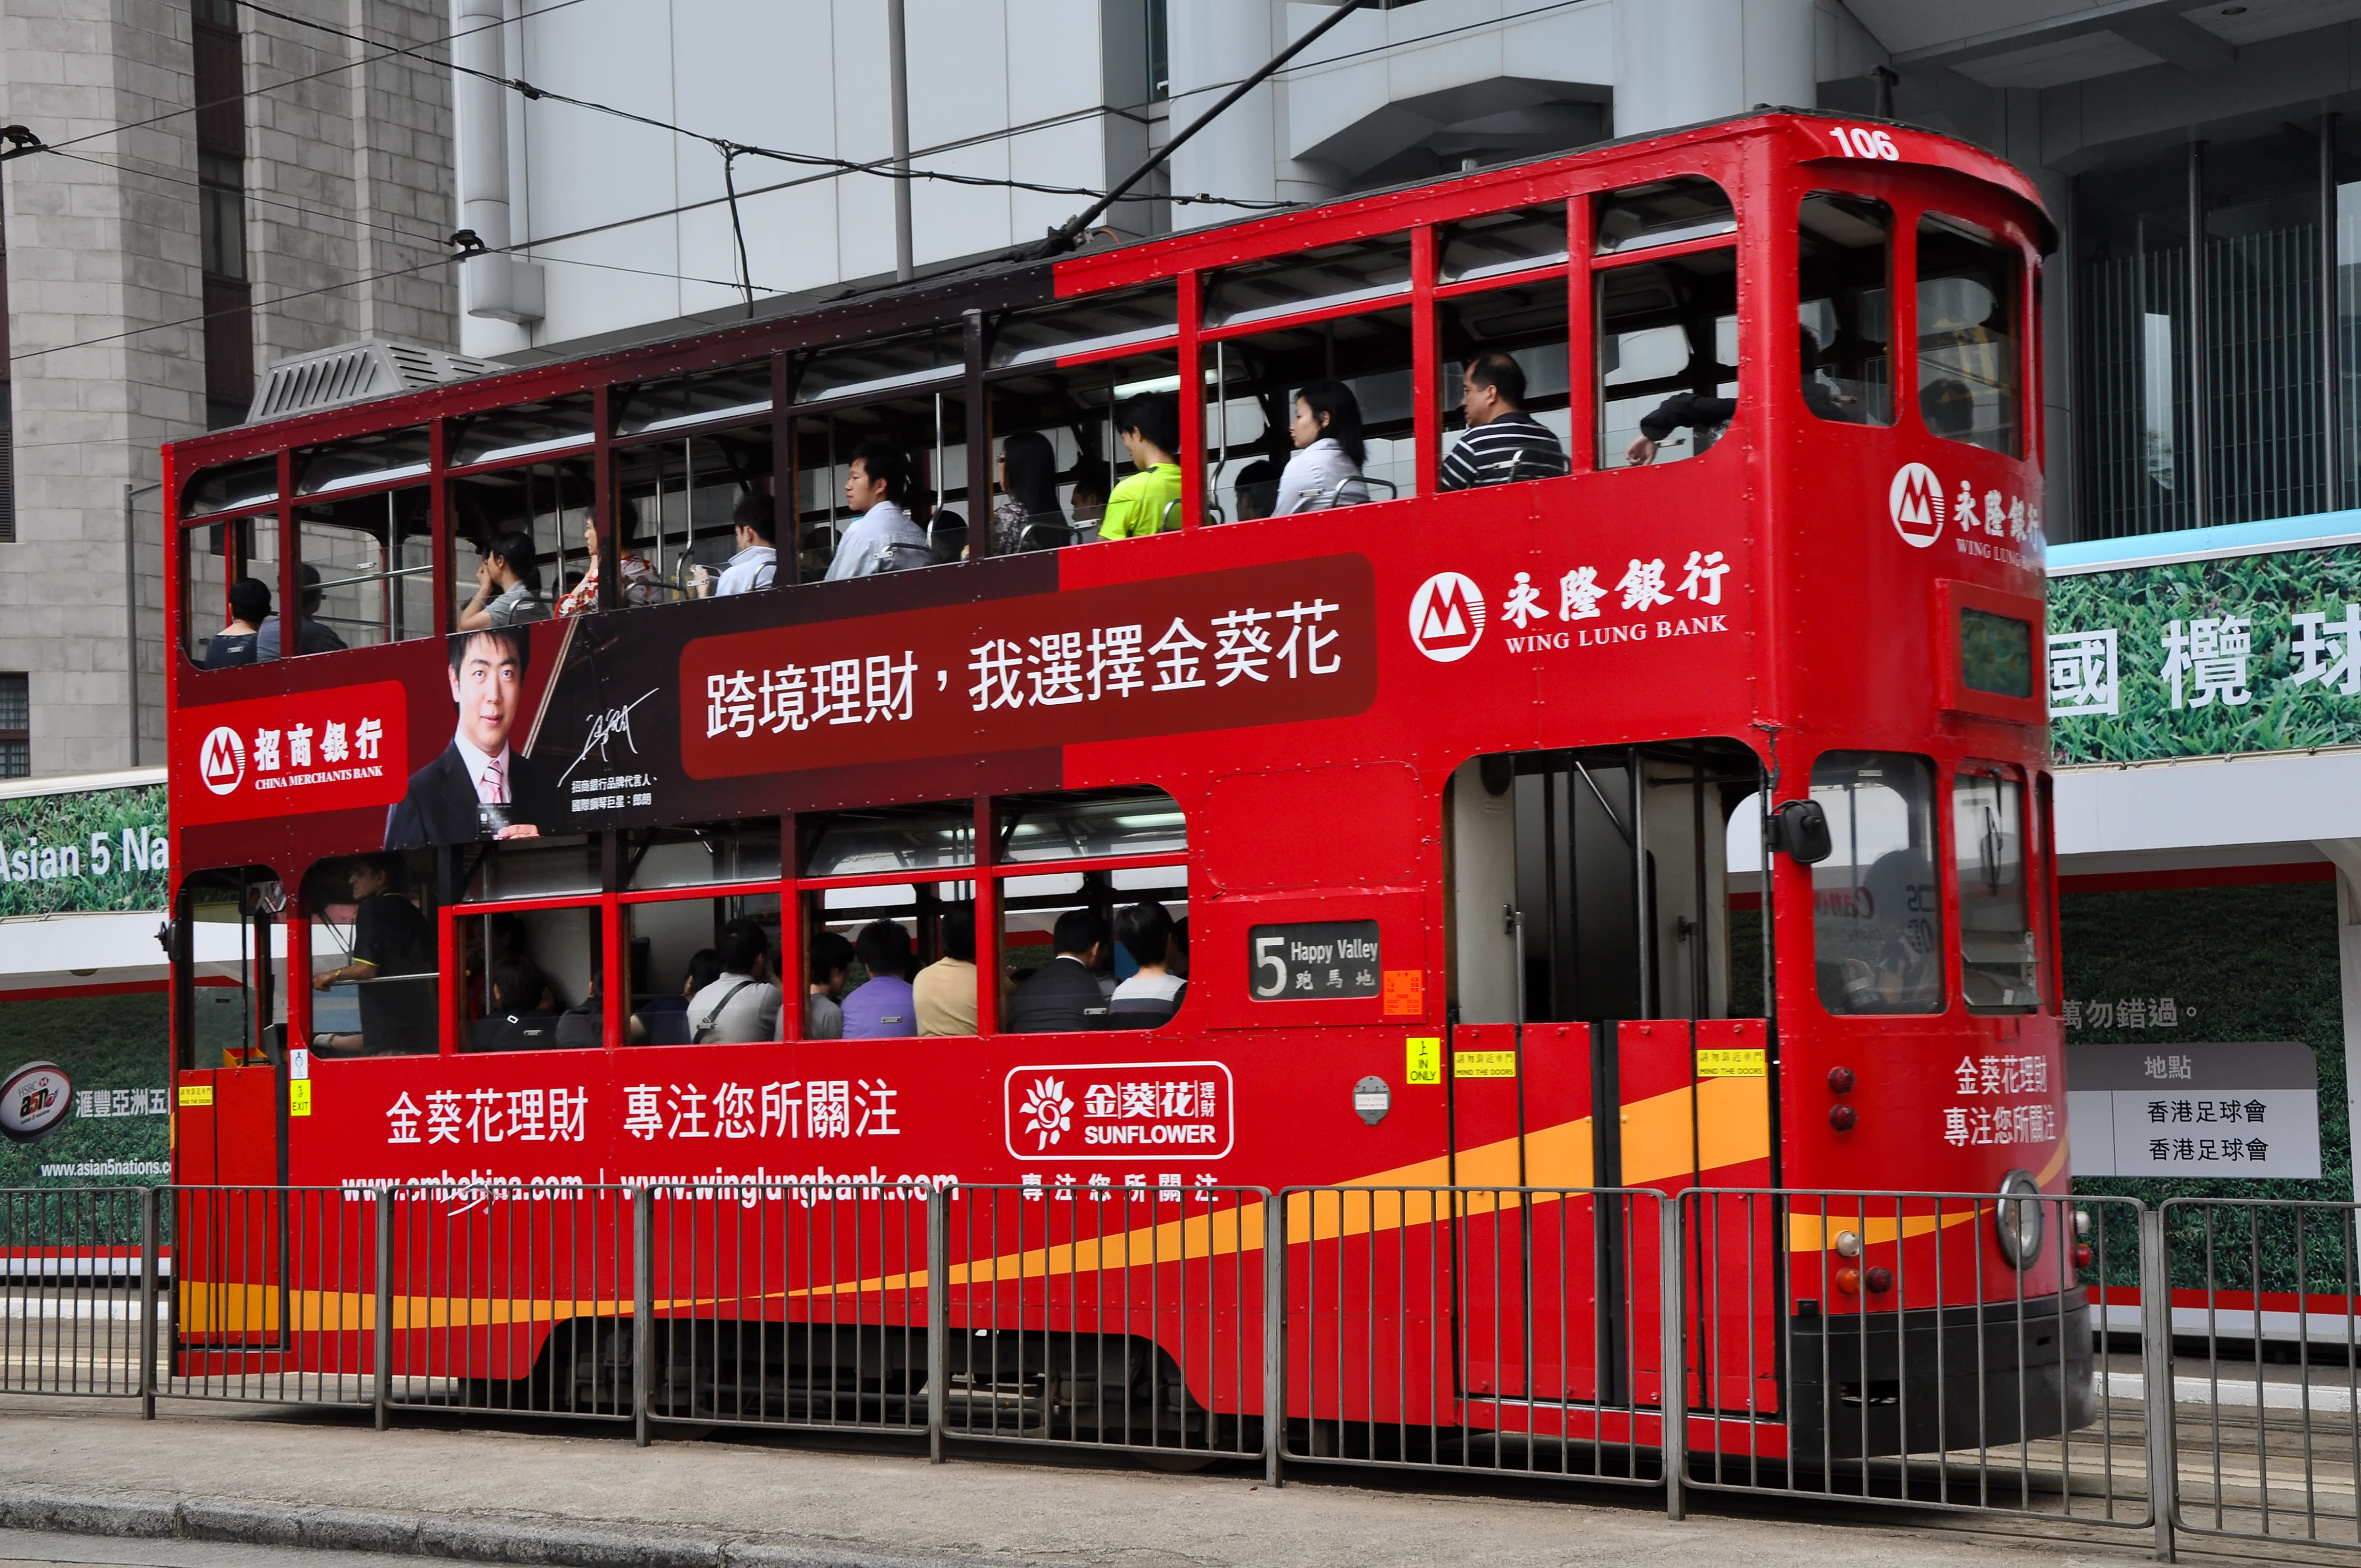 Tram in Hong Kong is the only tram system in the world run with double decker. Photo: Shutterstock